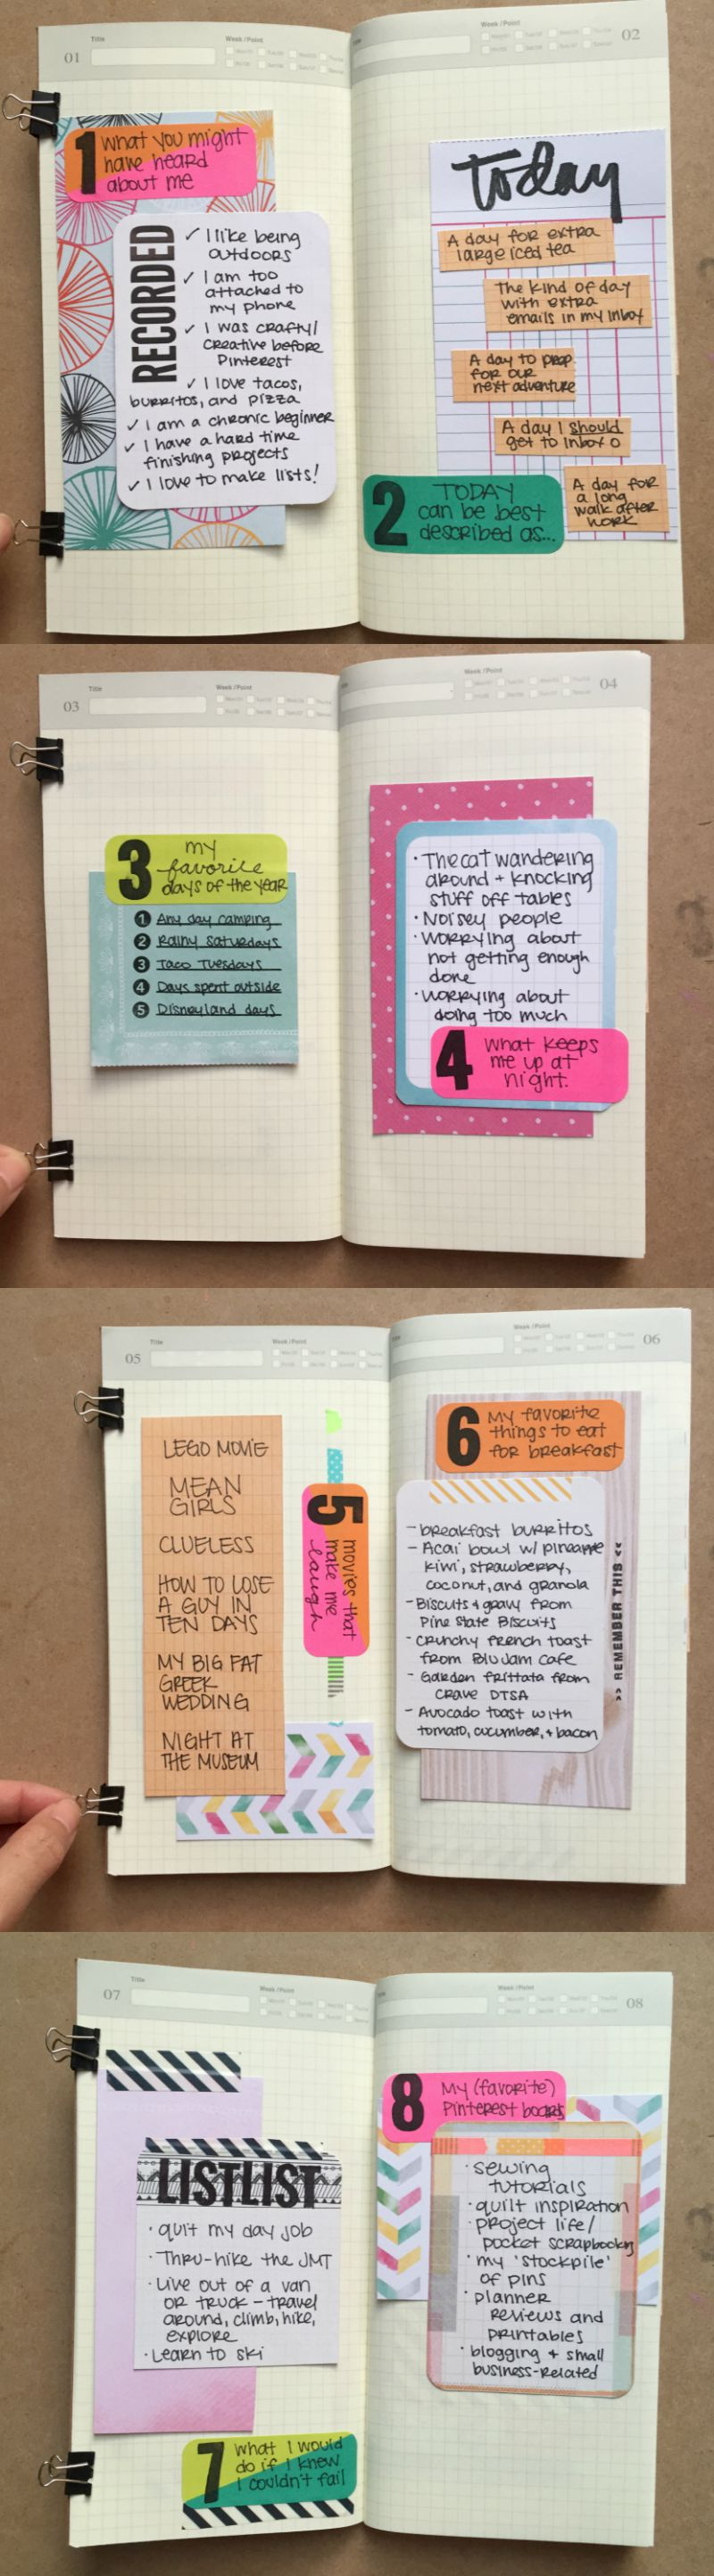 Midori Travelers Notebook for 30 Days of Lists Creative Journaling Challenge with Campfire Chic